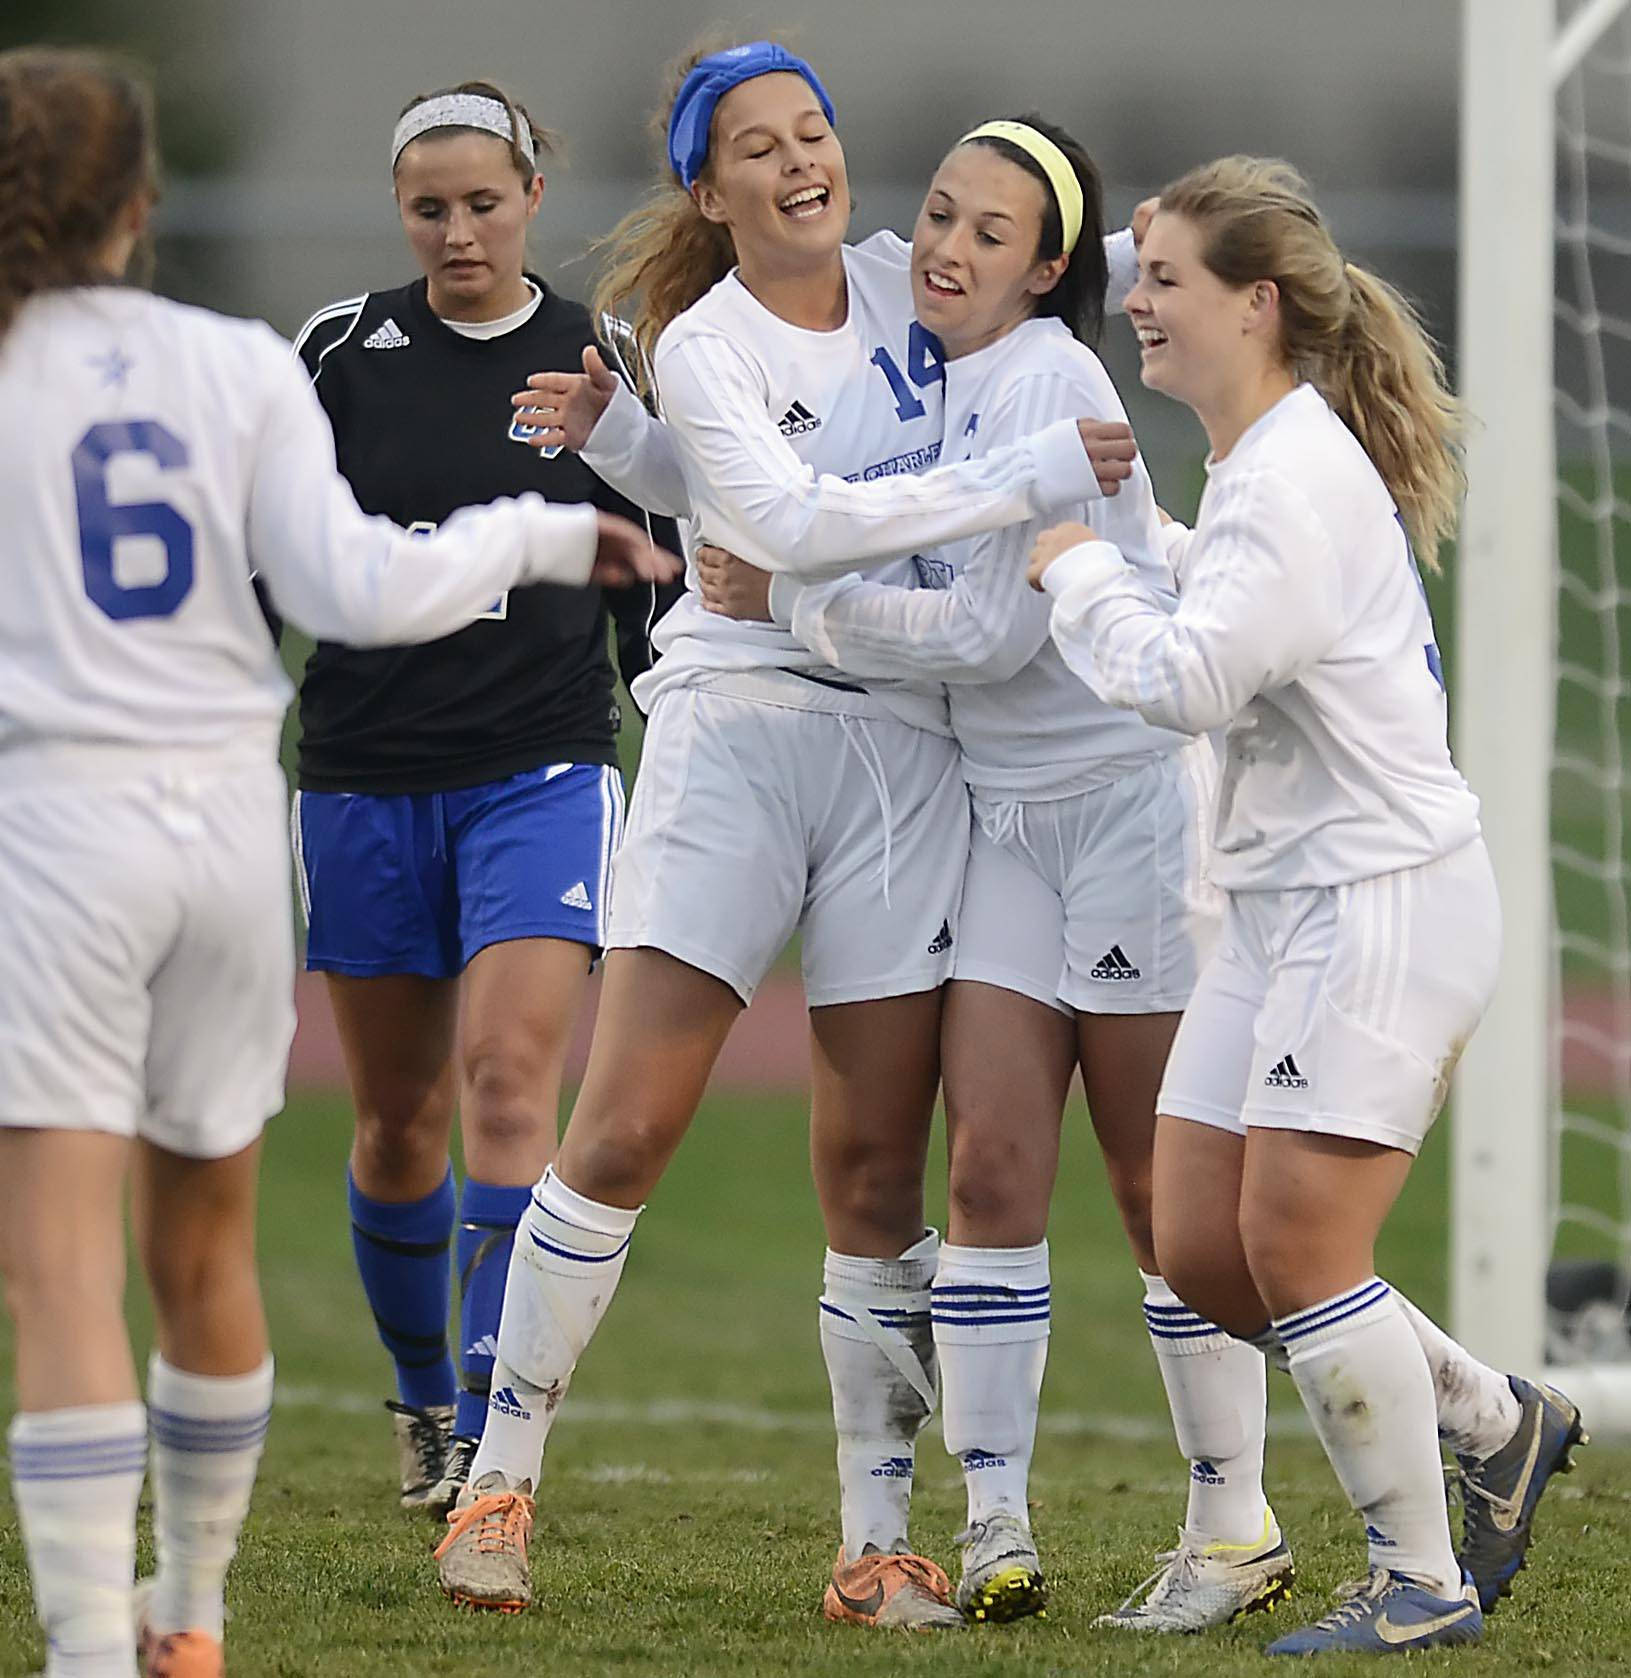 St. Charles North's Ashlyn Walter, second from right, is hugged by teammates after her first half goal against Geneva Wednesday in St. Charles.